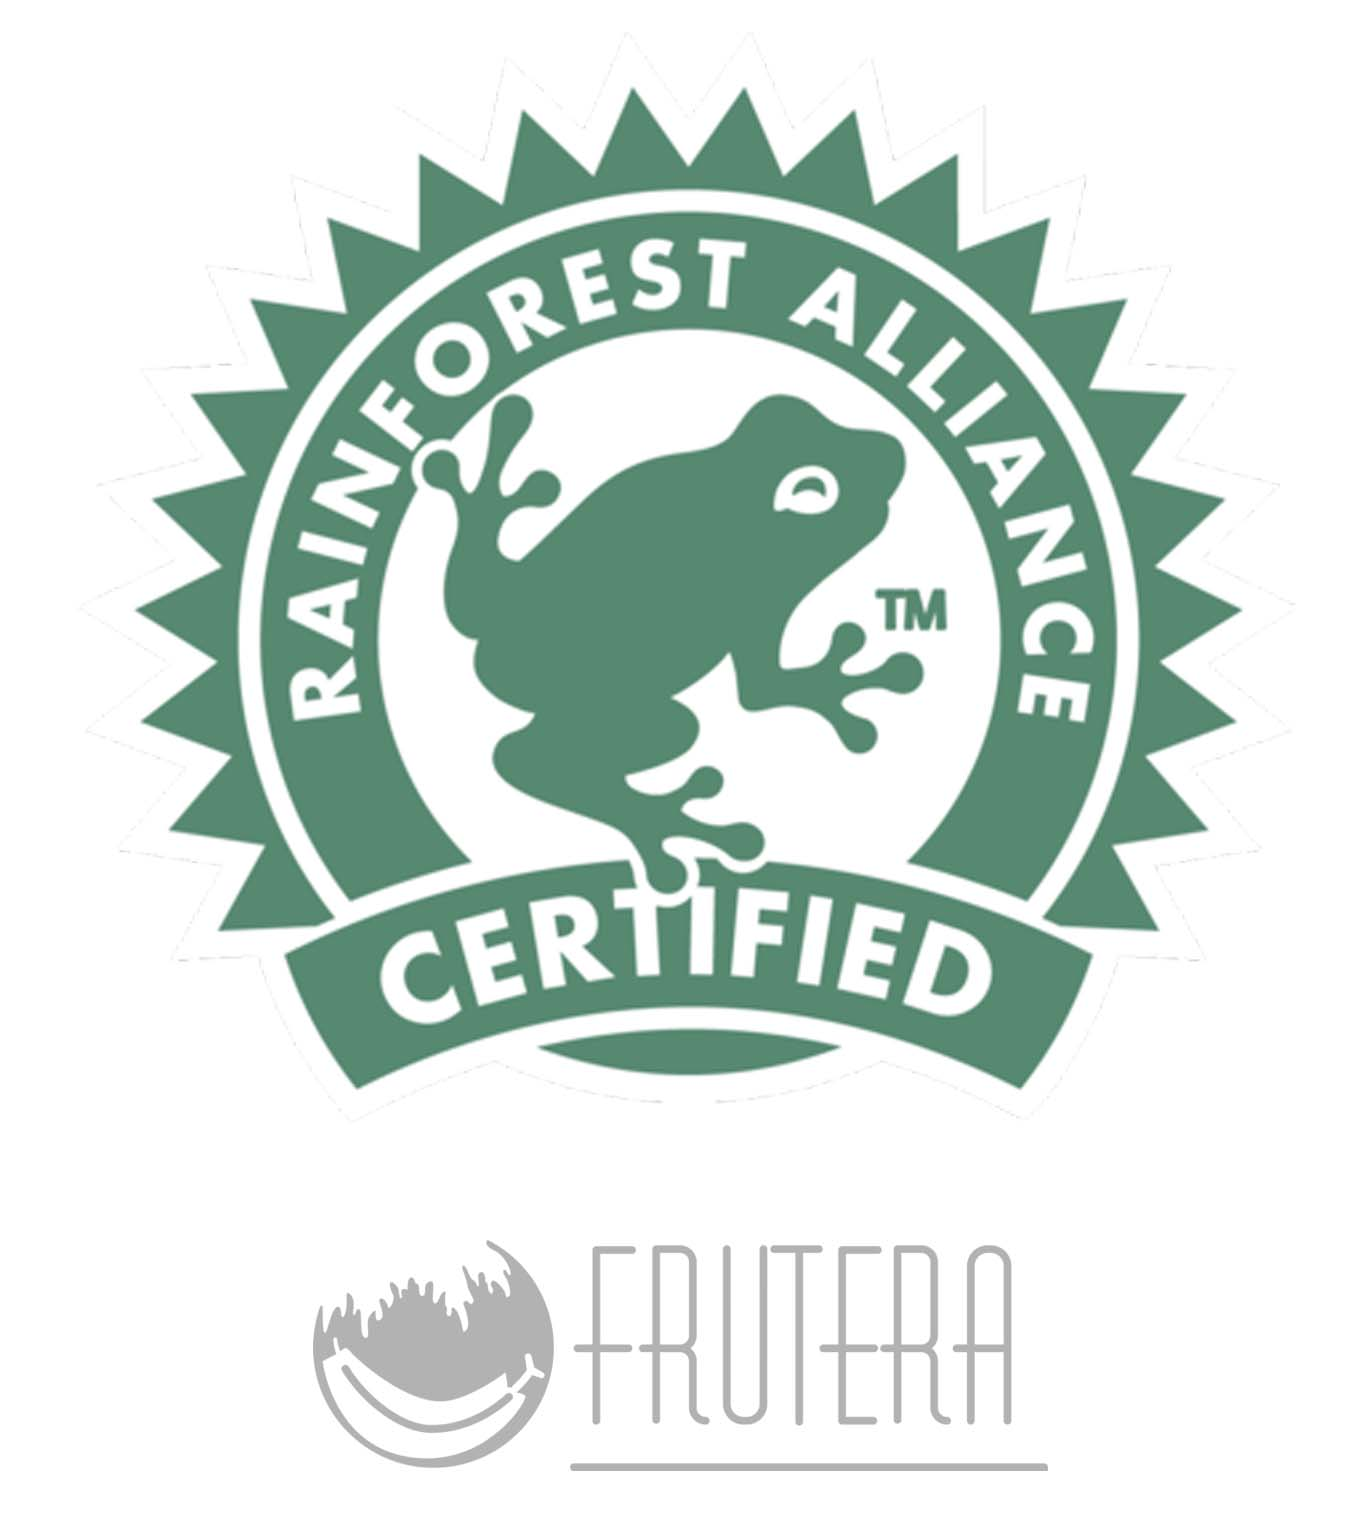 Fincas La Sierra y Las Vegas, de Frutera, se re-certifican con Rainforest Alliance